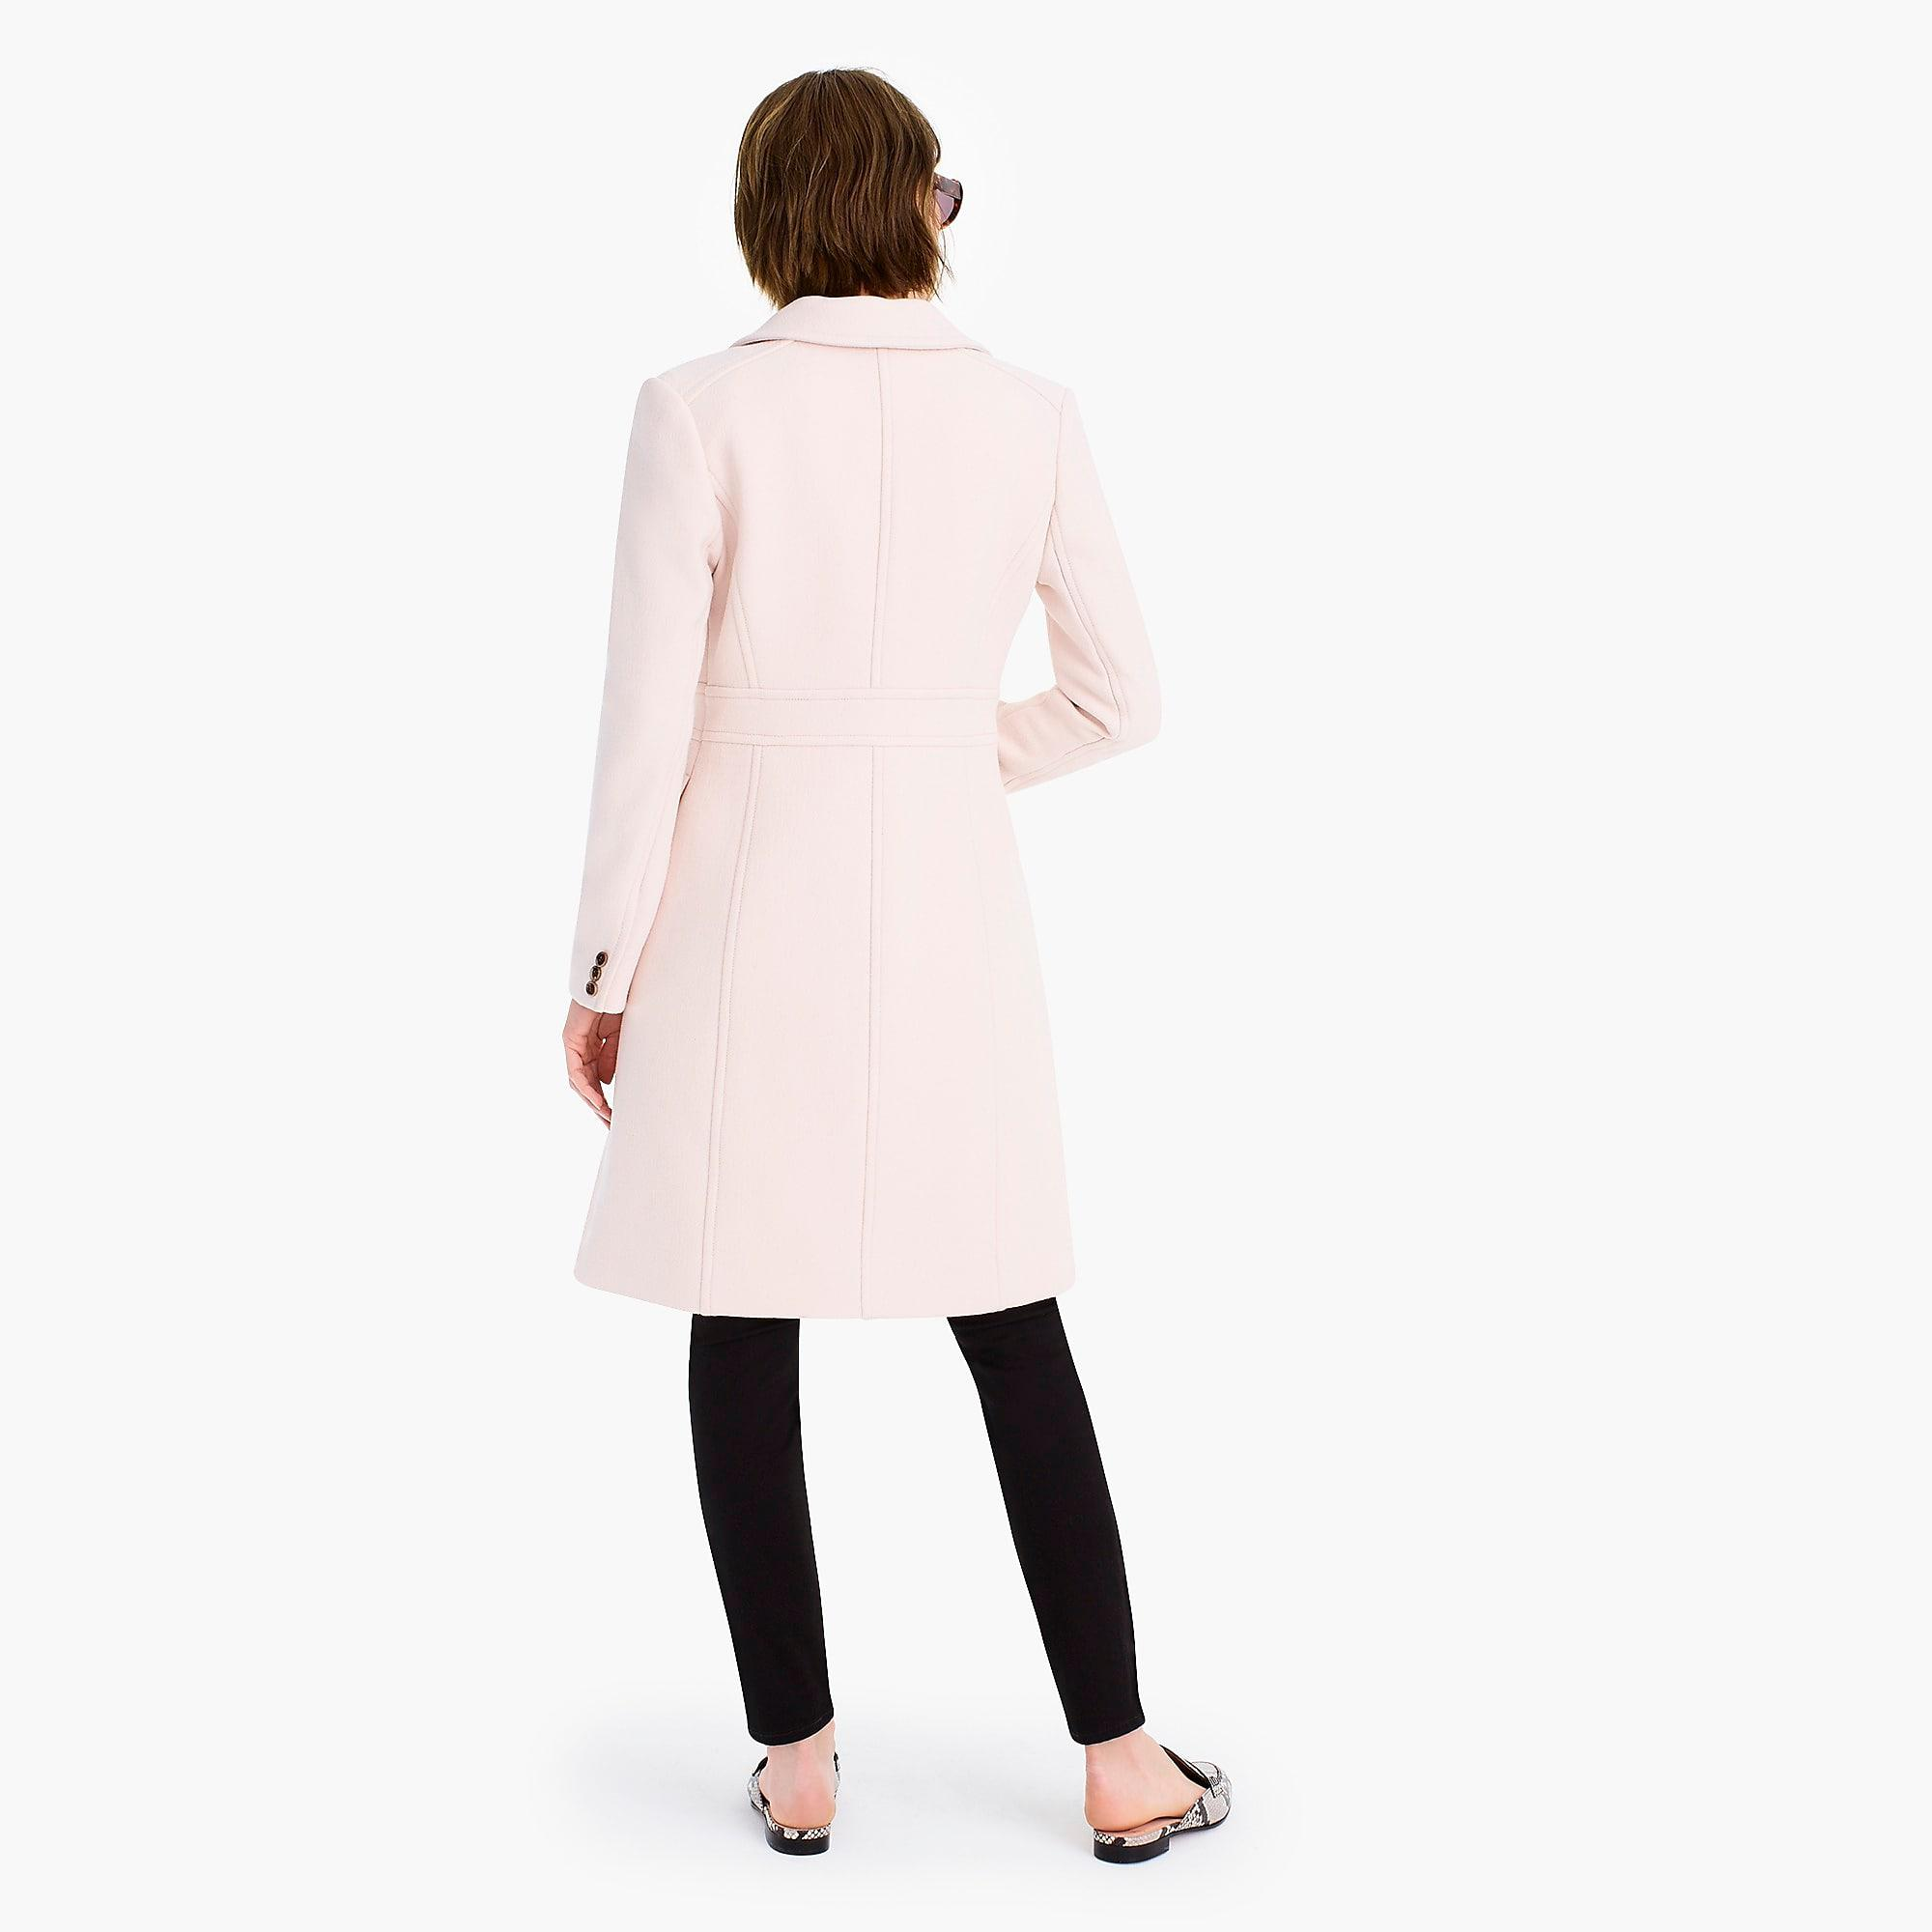 e67824385c788 J.Crew - Natural Italian Double-cloth Wool Lady Day Coat With Thinsulate -.  View fullscreen